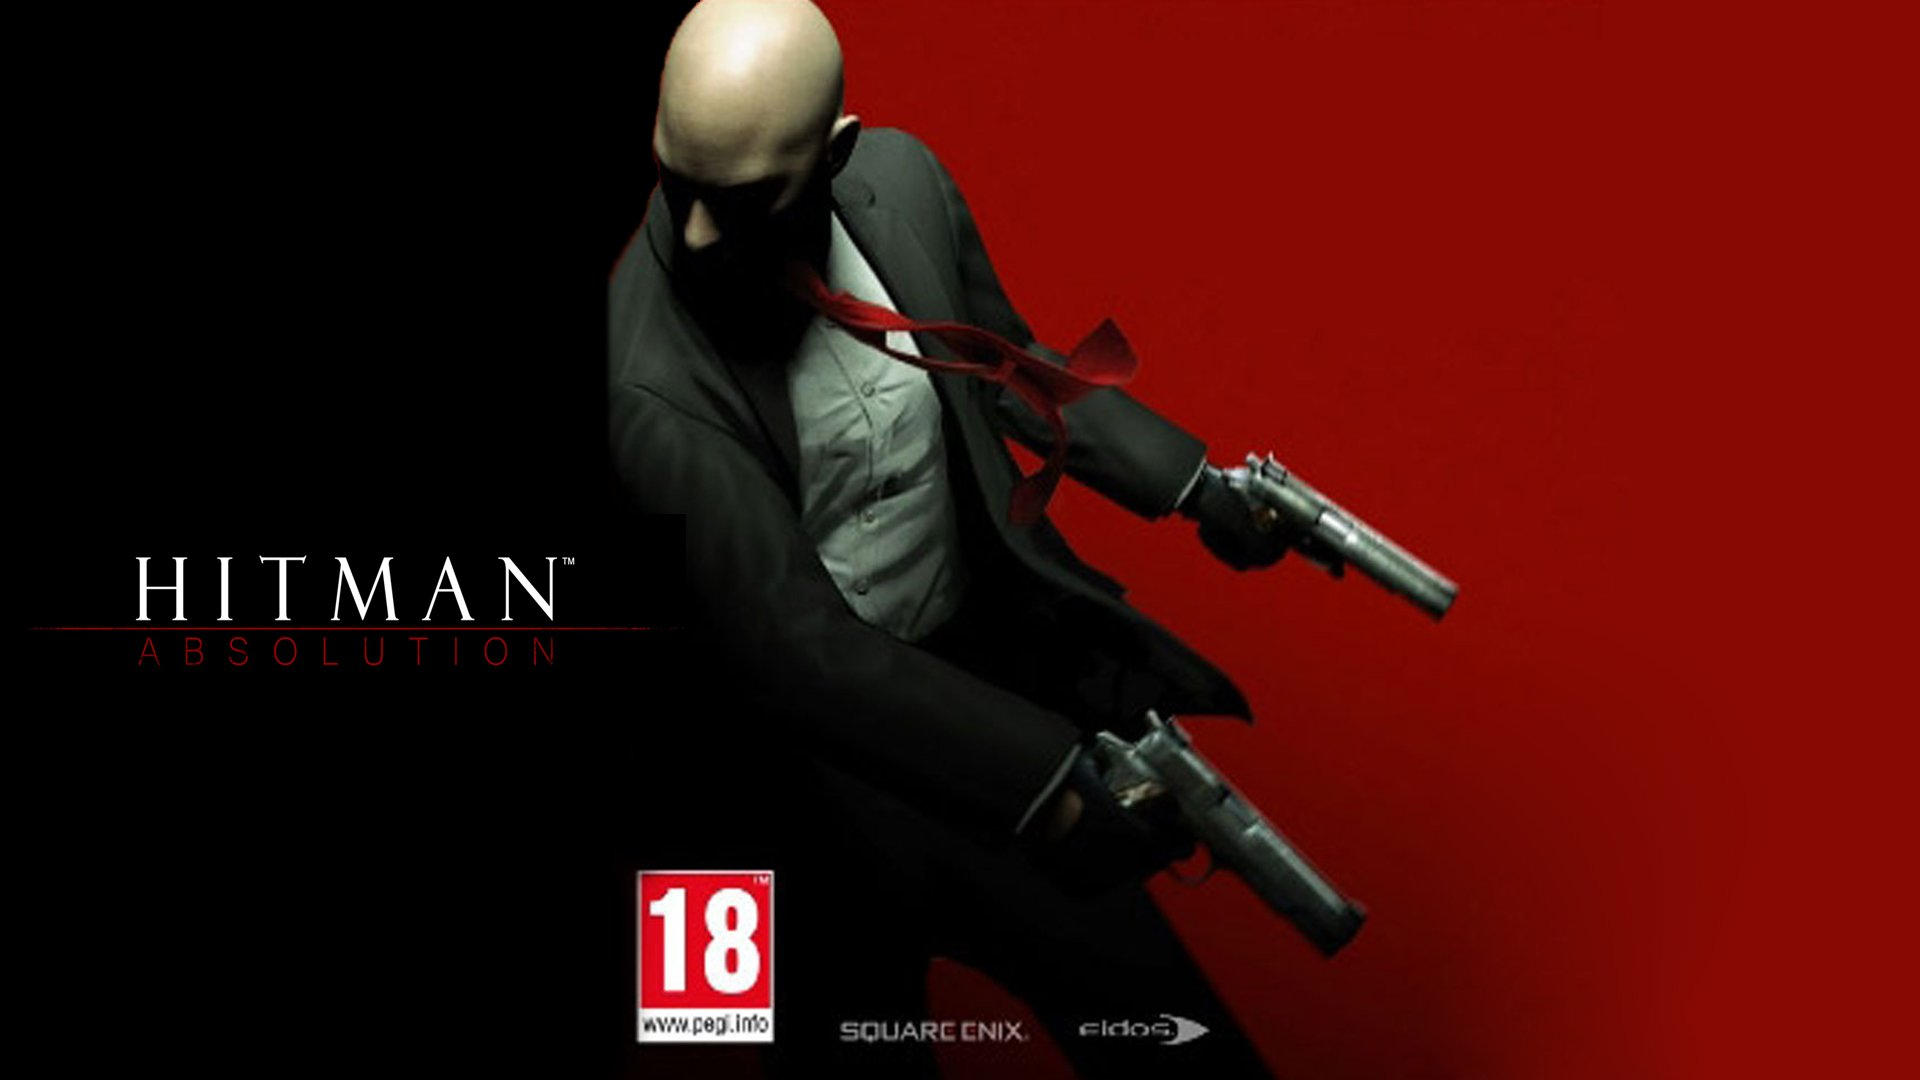 Hitman Absolution Console Games Page 379796 With Resolutions 1920 1920x1080